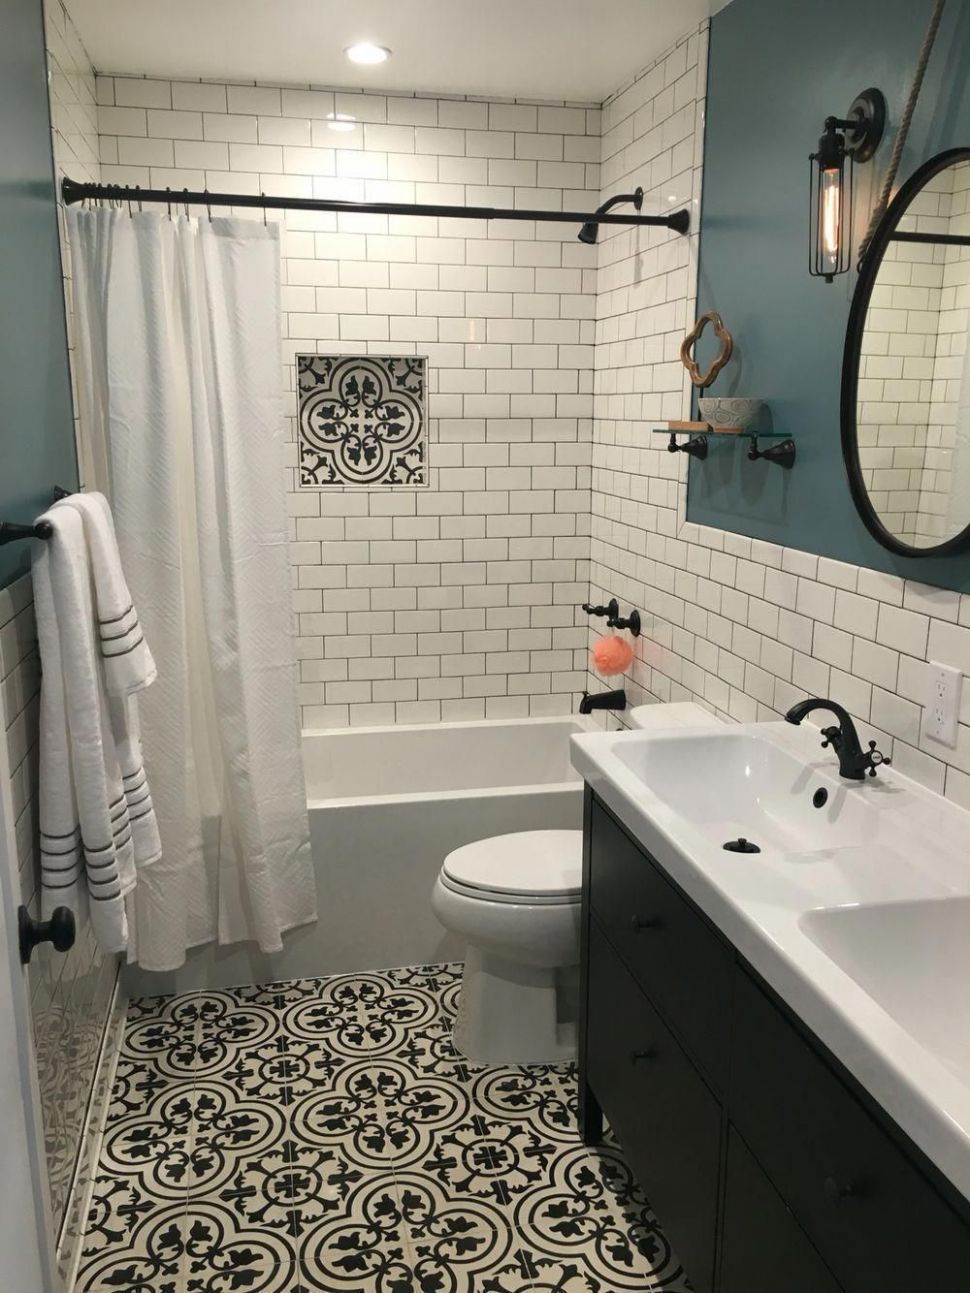 Most Popular Small Bathroom Remodel Ideas on a Budget in 10 This ...